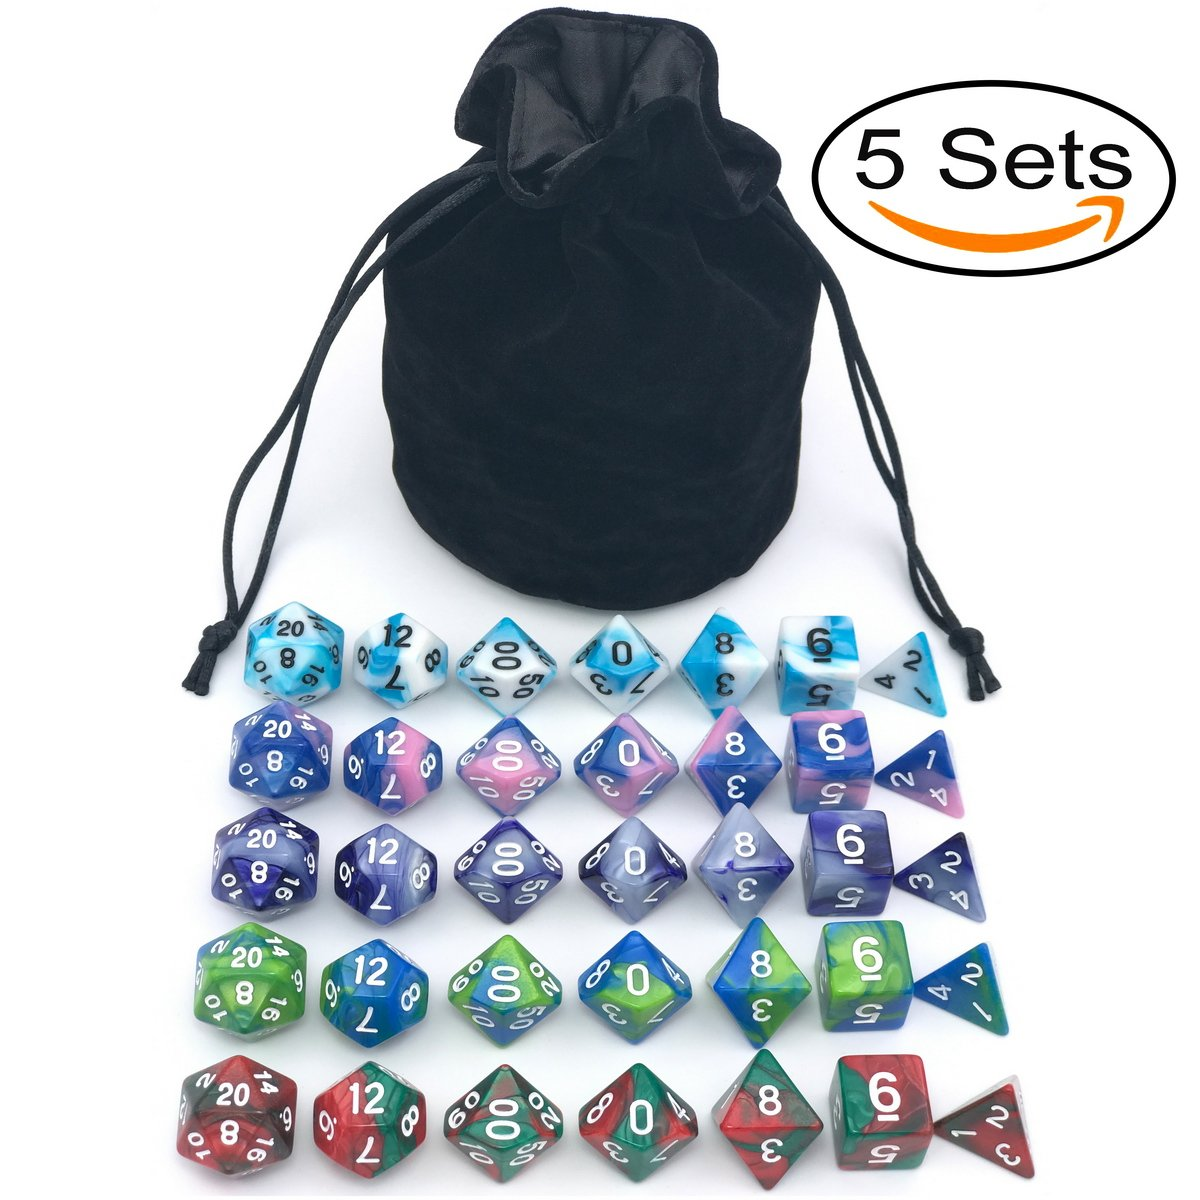 Dice Set for Dungeons&Dragons, DnD, RPG Games, Polyhedral Dice Set, Assorted Dice Set, 35 Total, 5 Sets with drawstring dice pouch